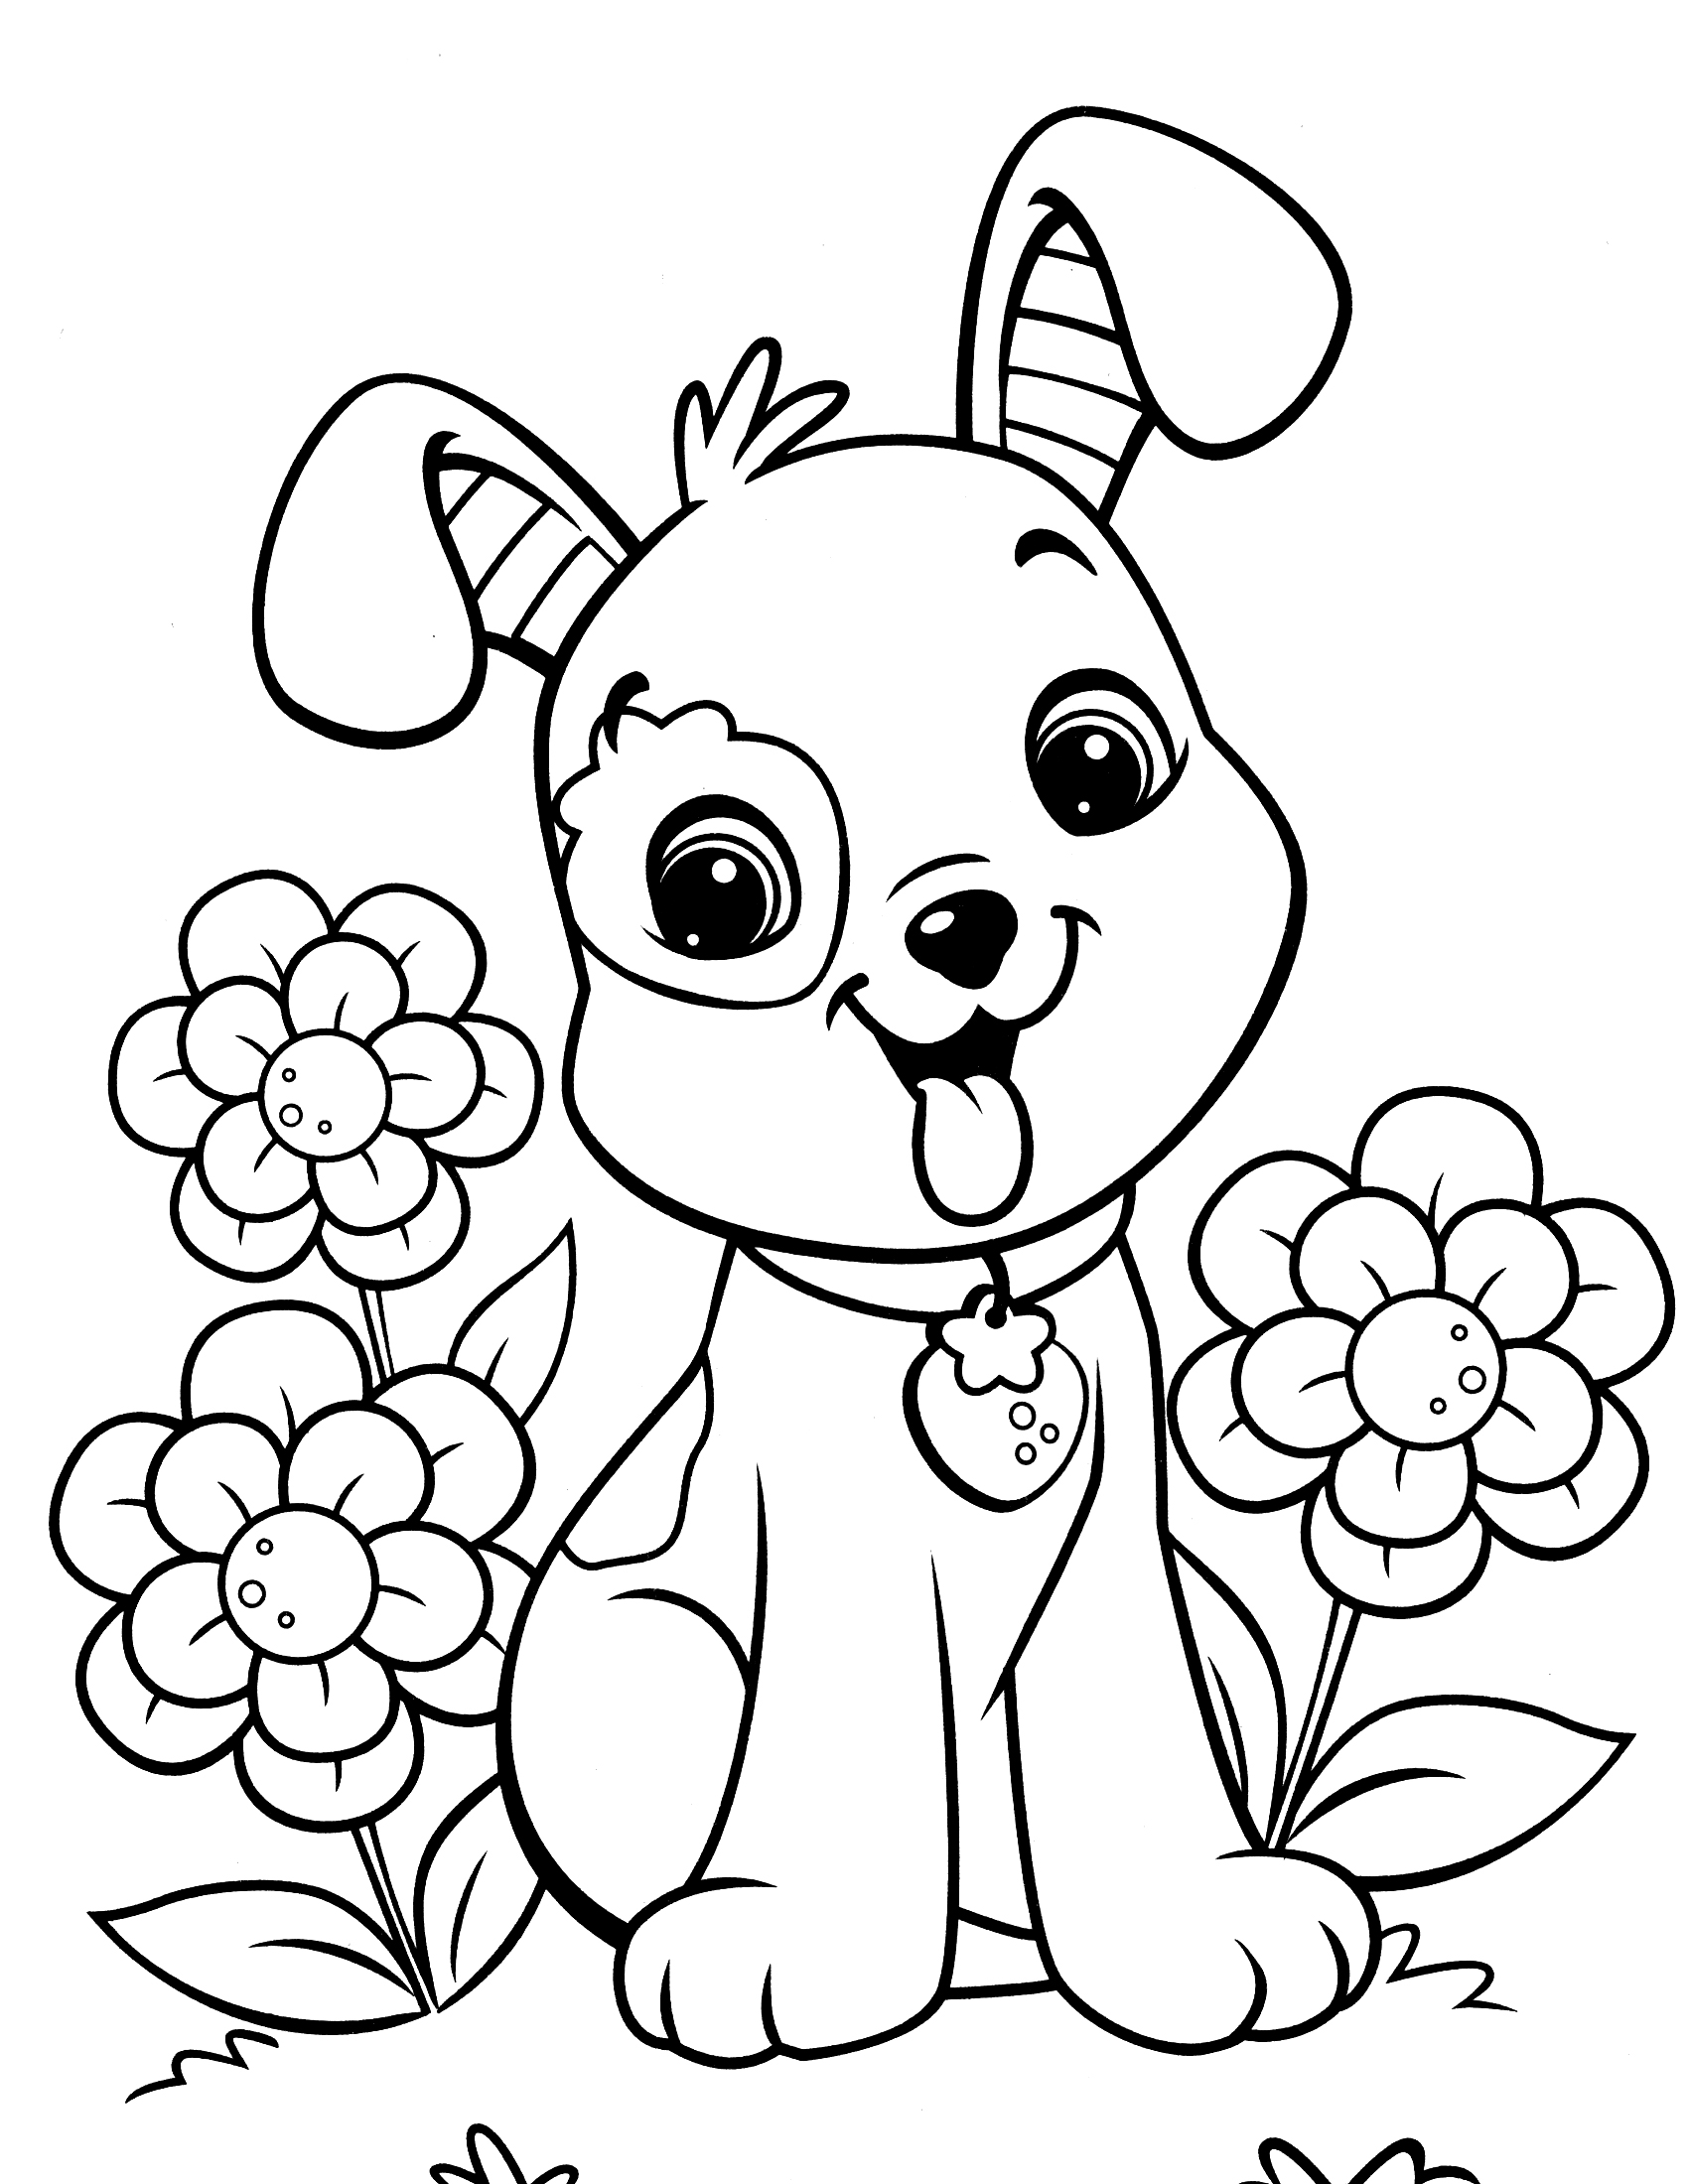 Colour in pictures of dogs